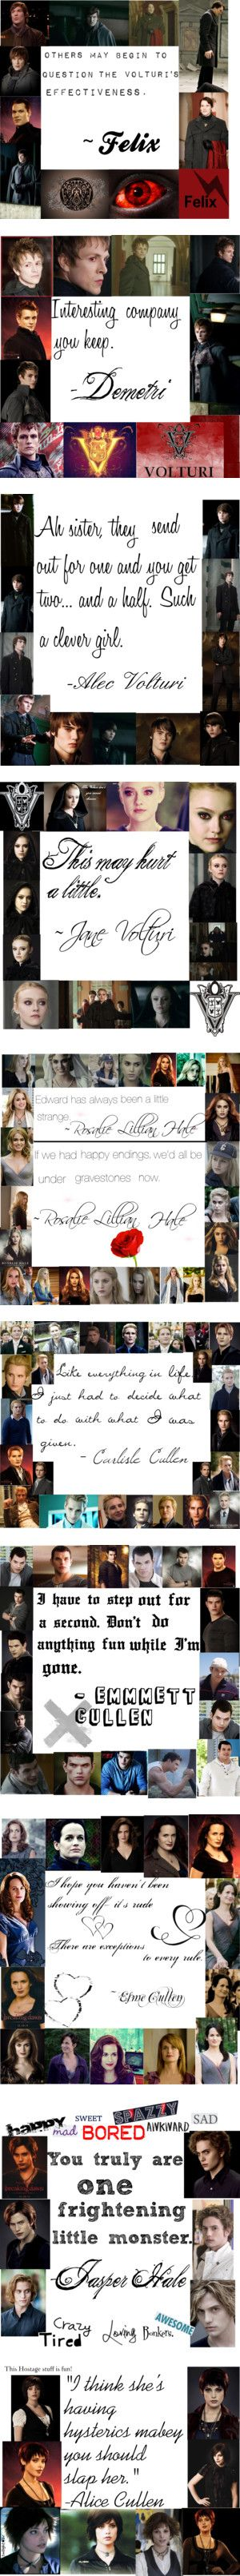 """""""Twilight Quotes"""" by edcullenrx on Polyvore"""